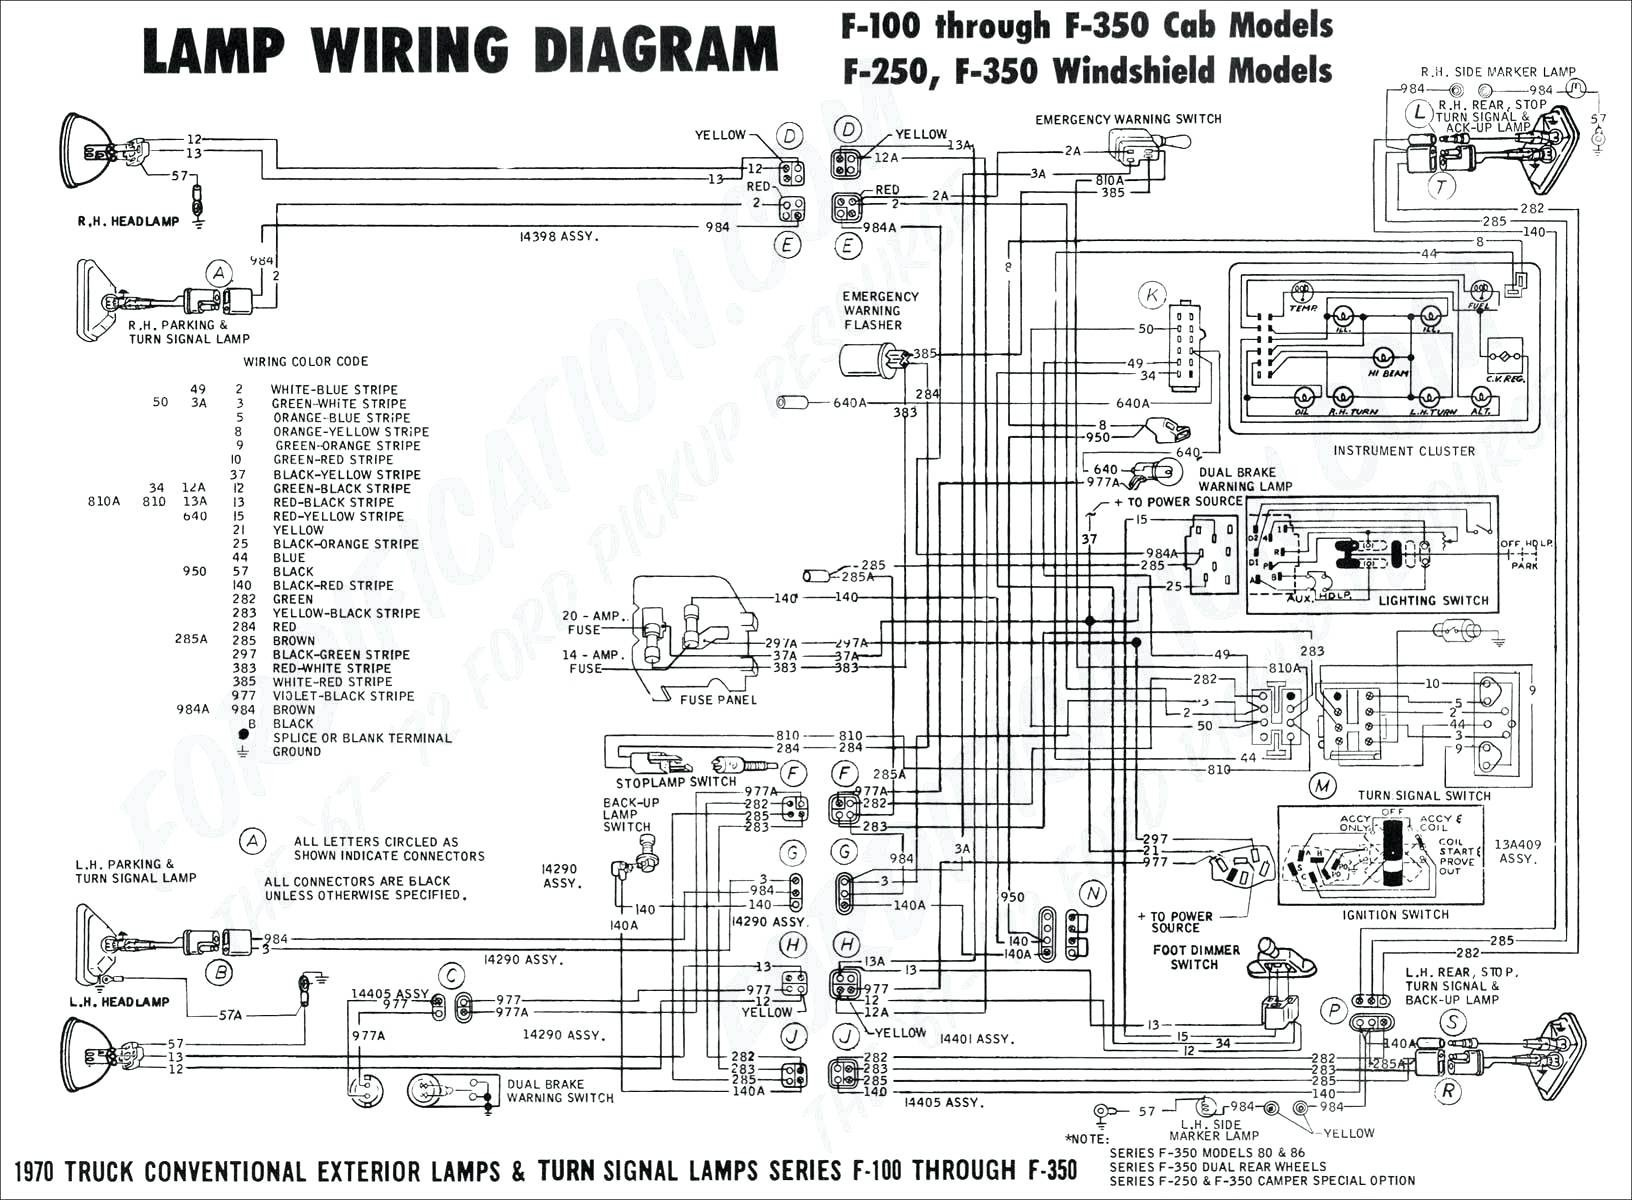 Ram Tail Light Wire Diagram Elegant